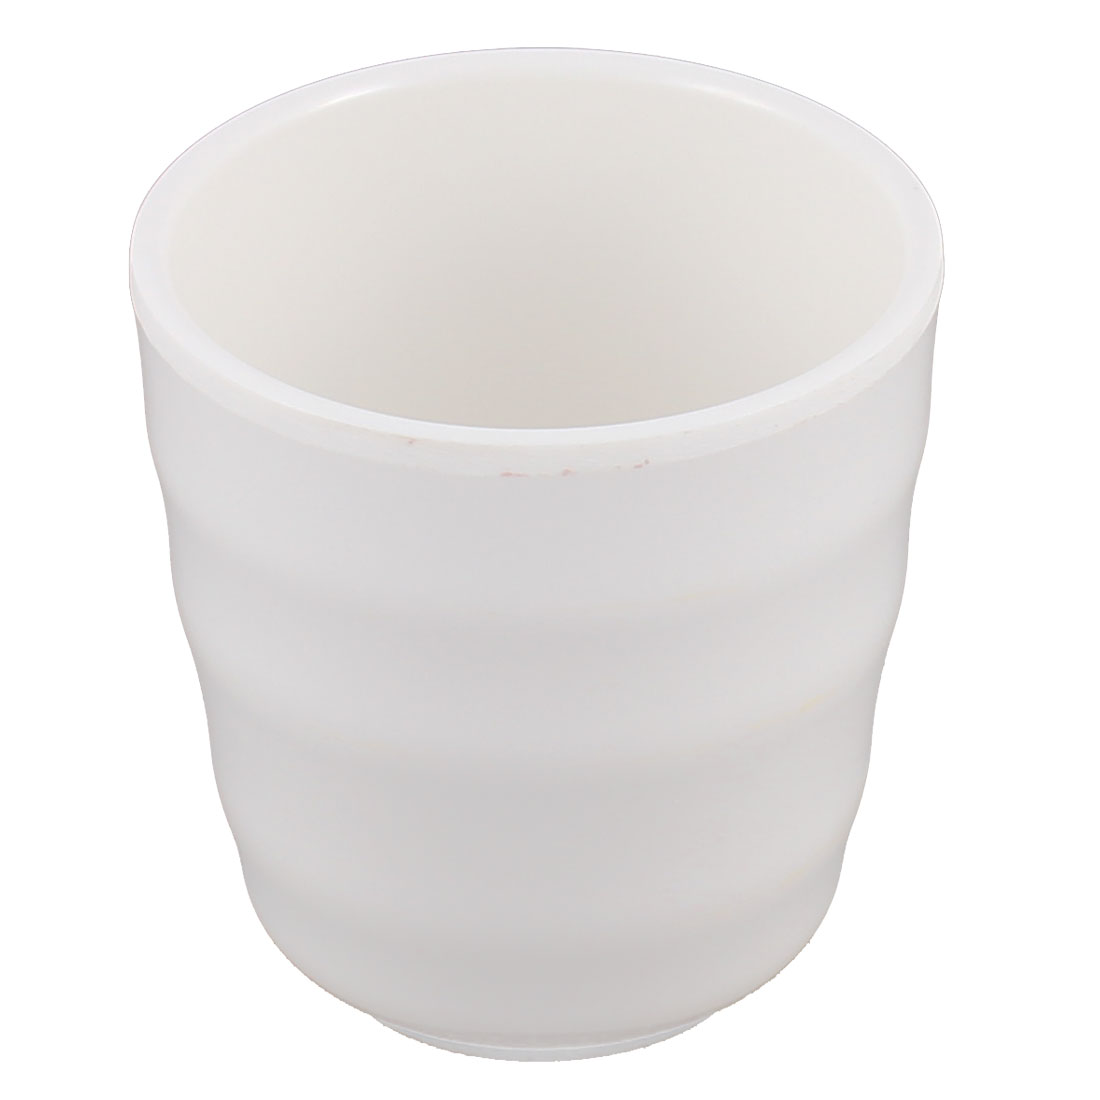 Home Table Plastic Water Tea Drinking Cup Mug White